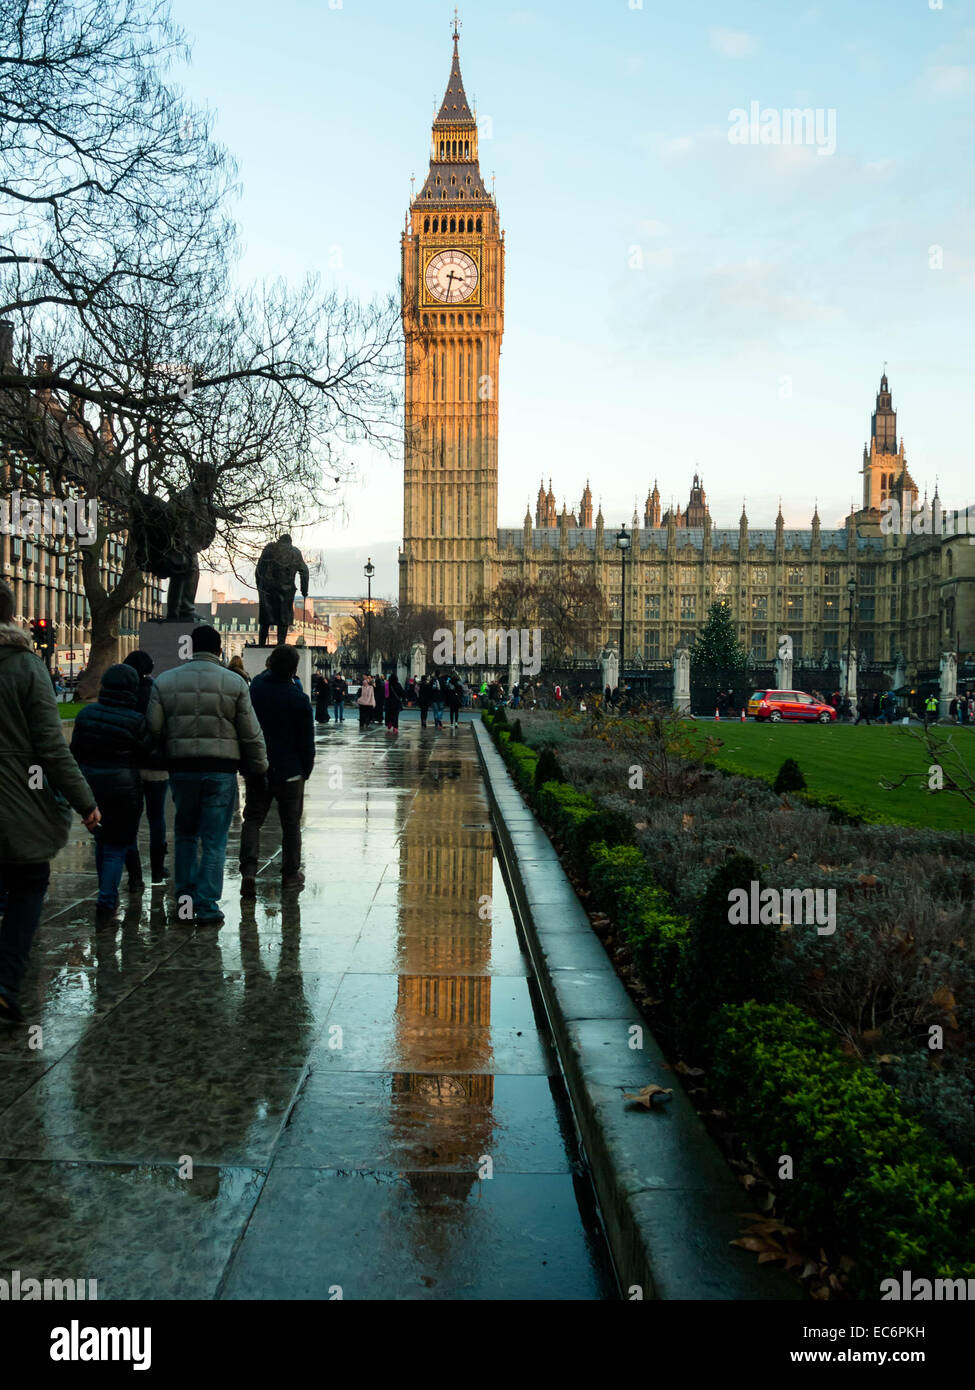 The Elizabeth tower, reflecting on the wet pavements of Parliament square, London, England - Stock Image